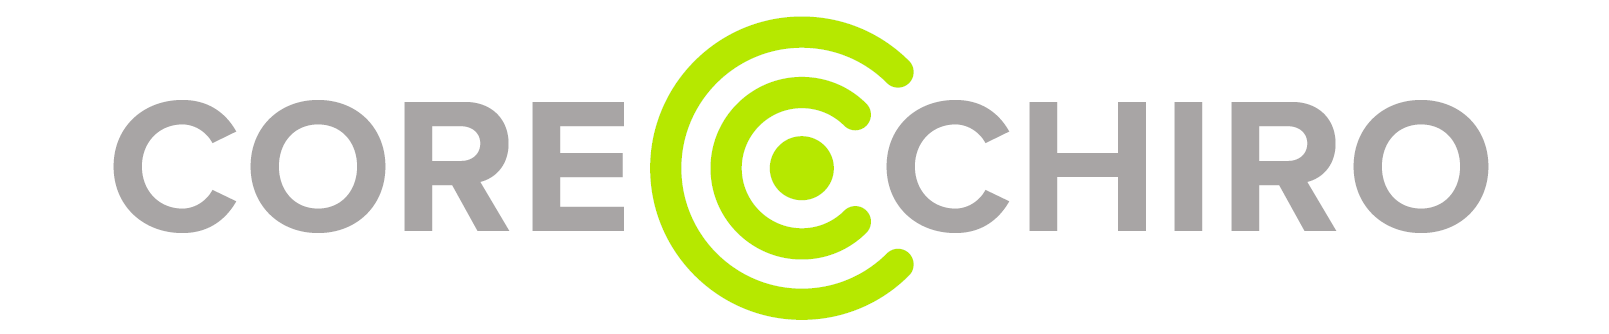 CCH0003.png